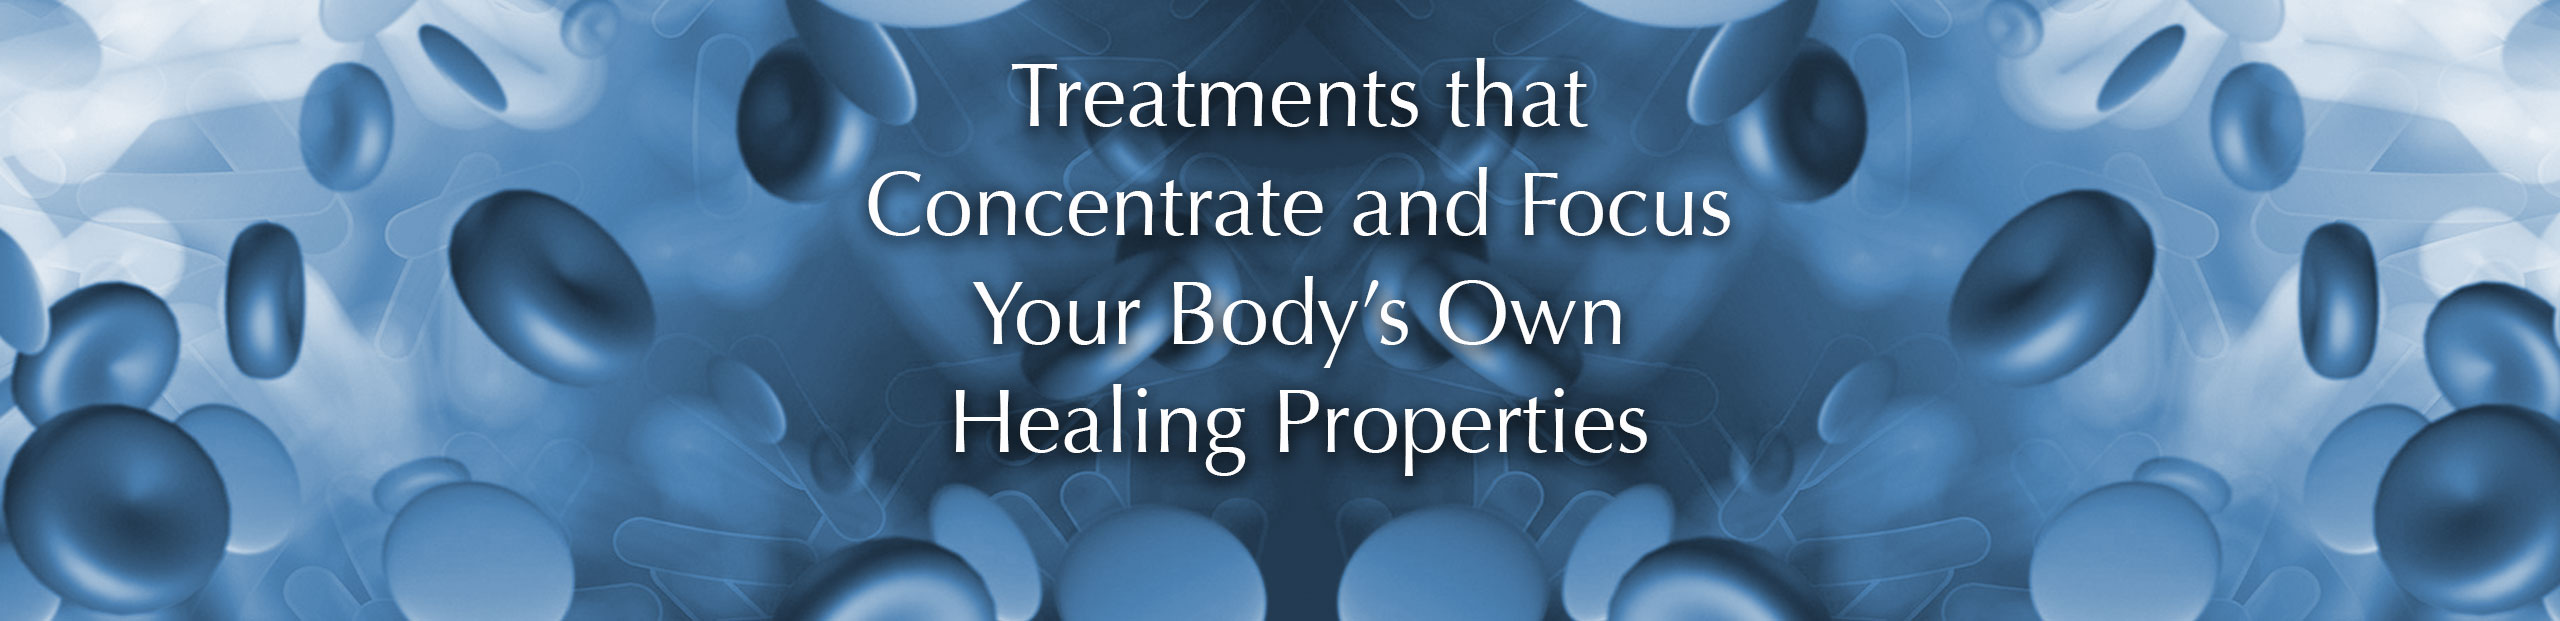 Regenerative Medicine: Treatments that Concentrate and Focus Your Body's Own Healing Properties.